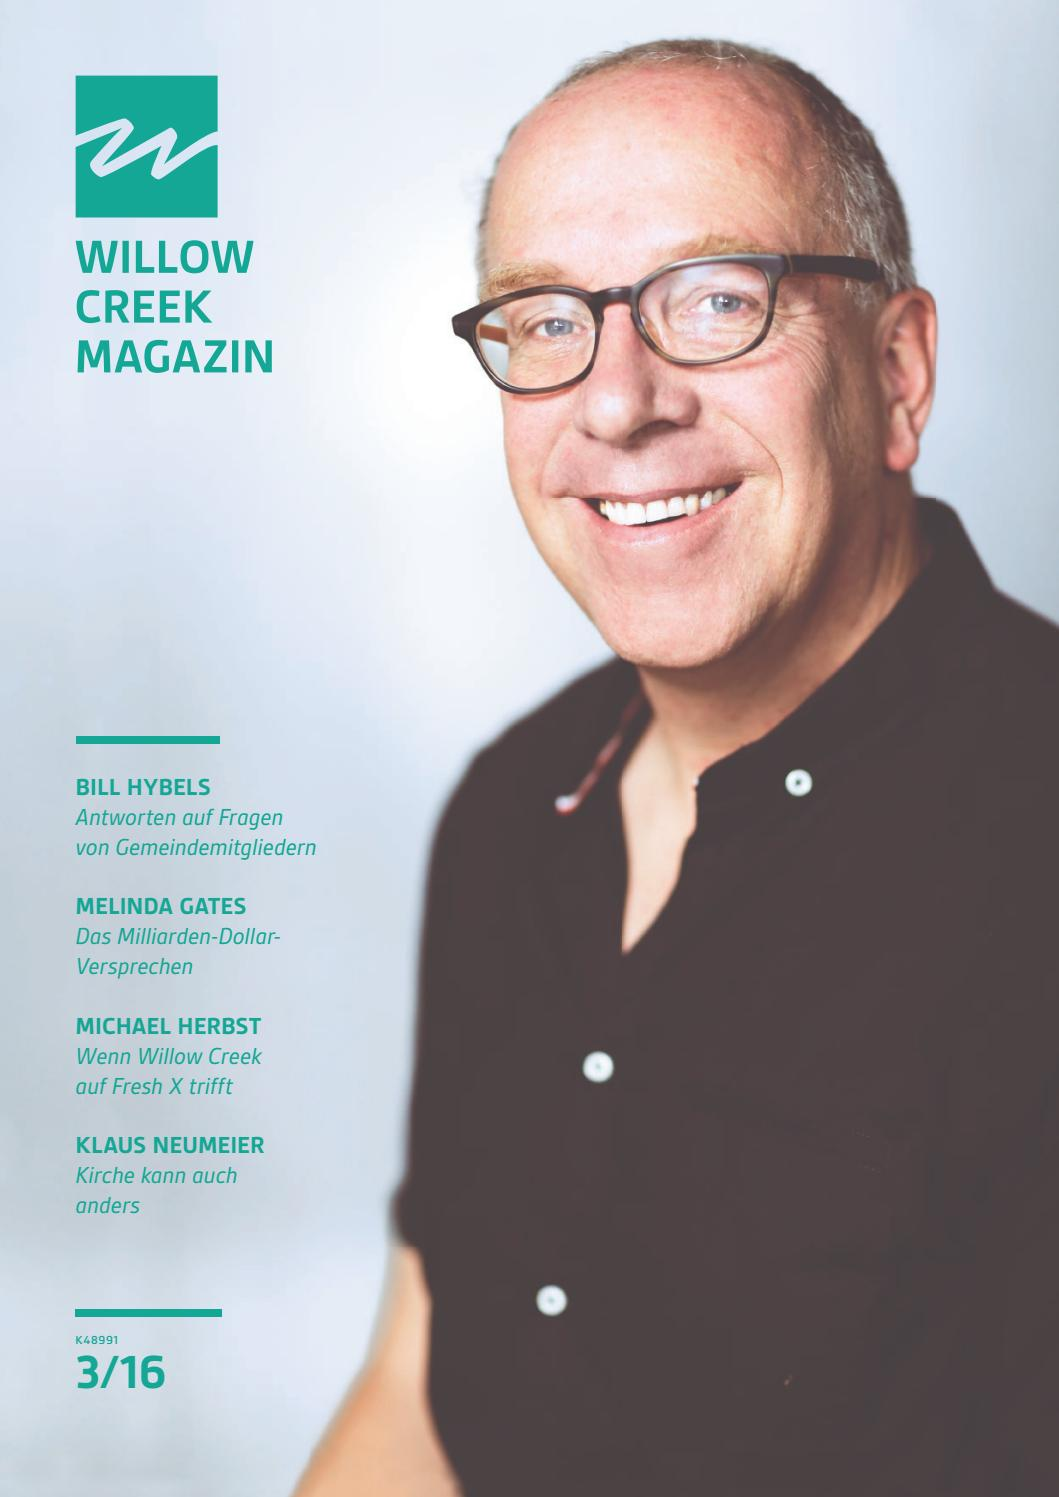 WILLOW CREEK MAGAZIN 3/16 by Willow Creek D/CH - issuu